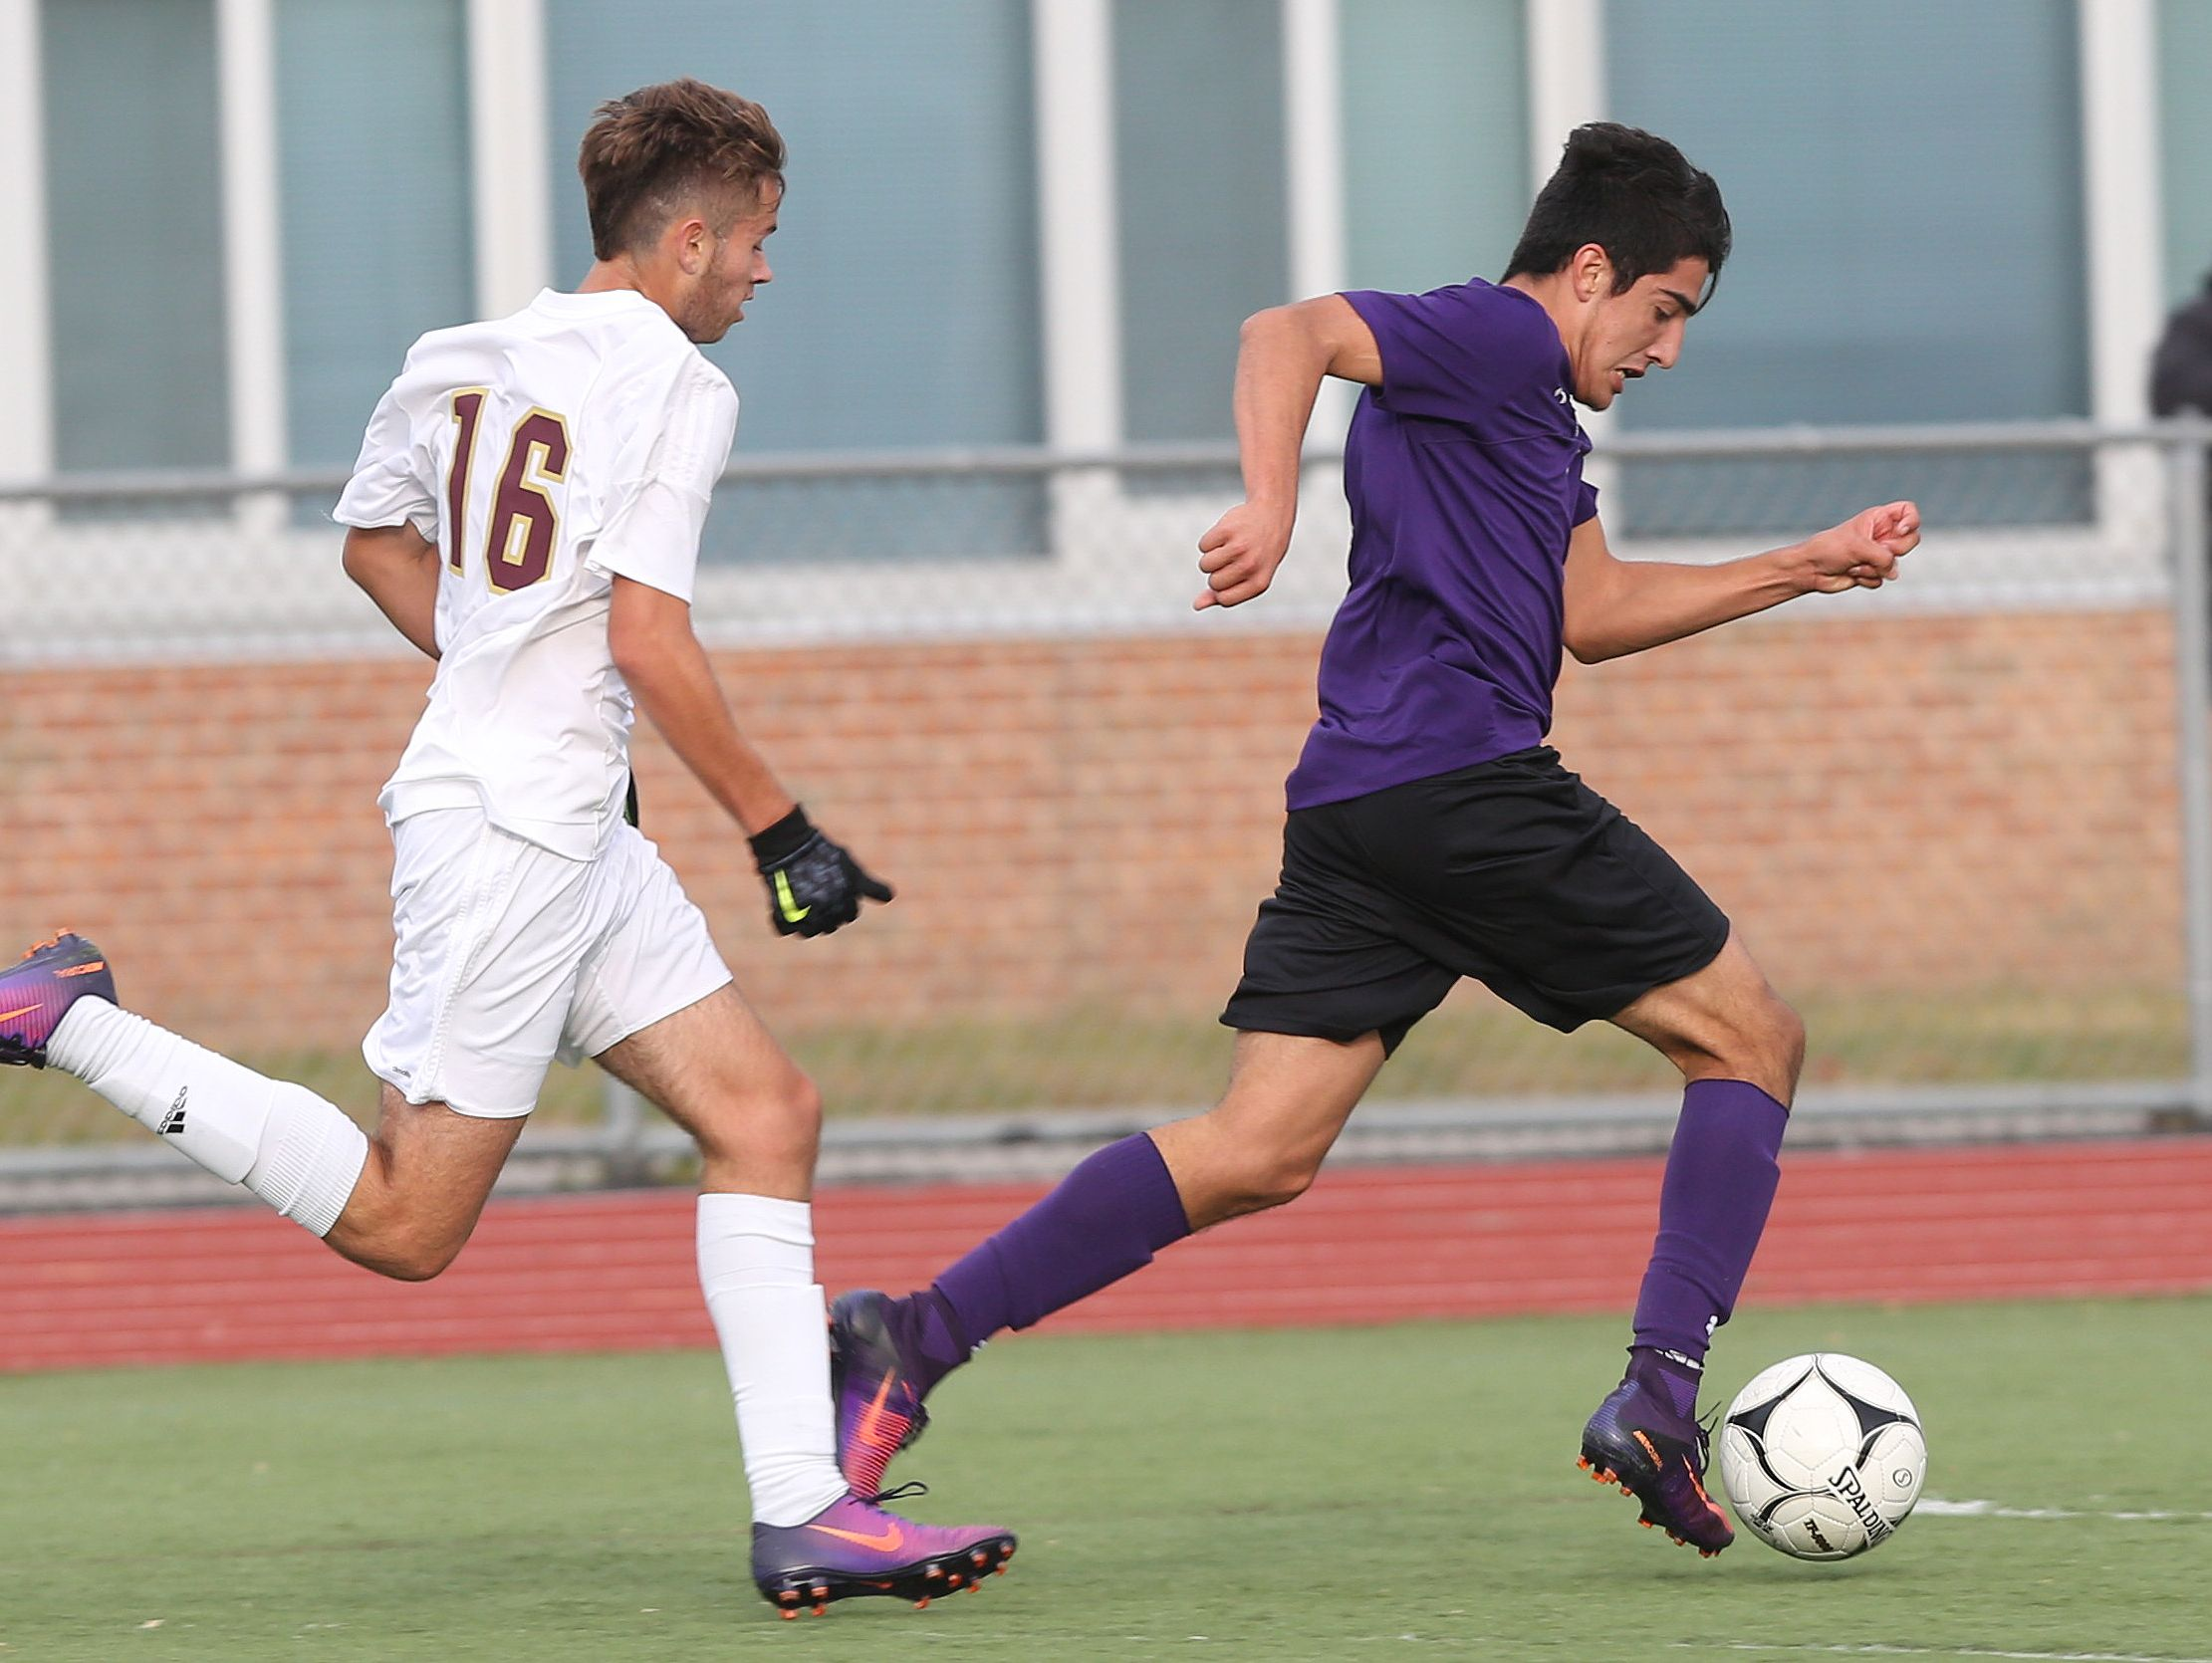 New Rochelle's Cristian Valencia (7) breaks away from Arlington's (16) as he shoots his second goal of the first half during the boys soccer Section 1 Class AA championship game at Lakeland High School in Shrub Oak High School Oct. 29, 2016. New Rochelle won the game 3-0.